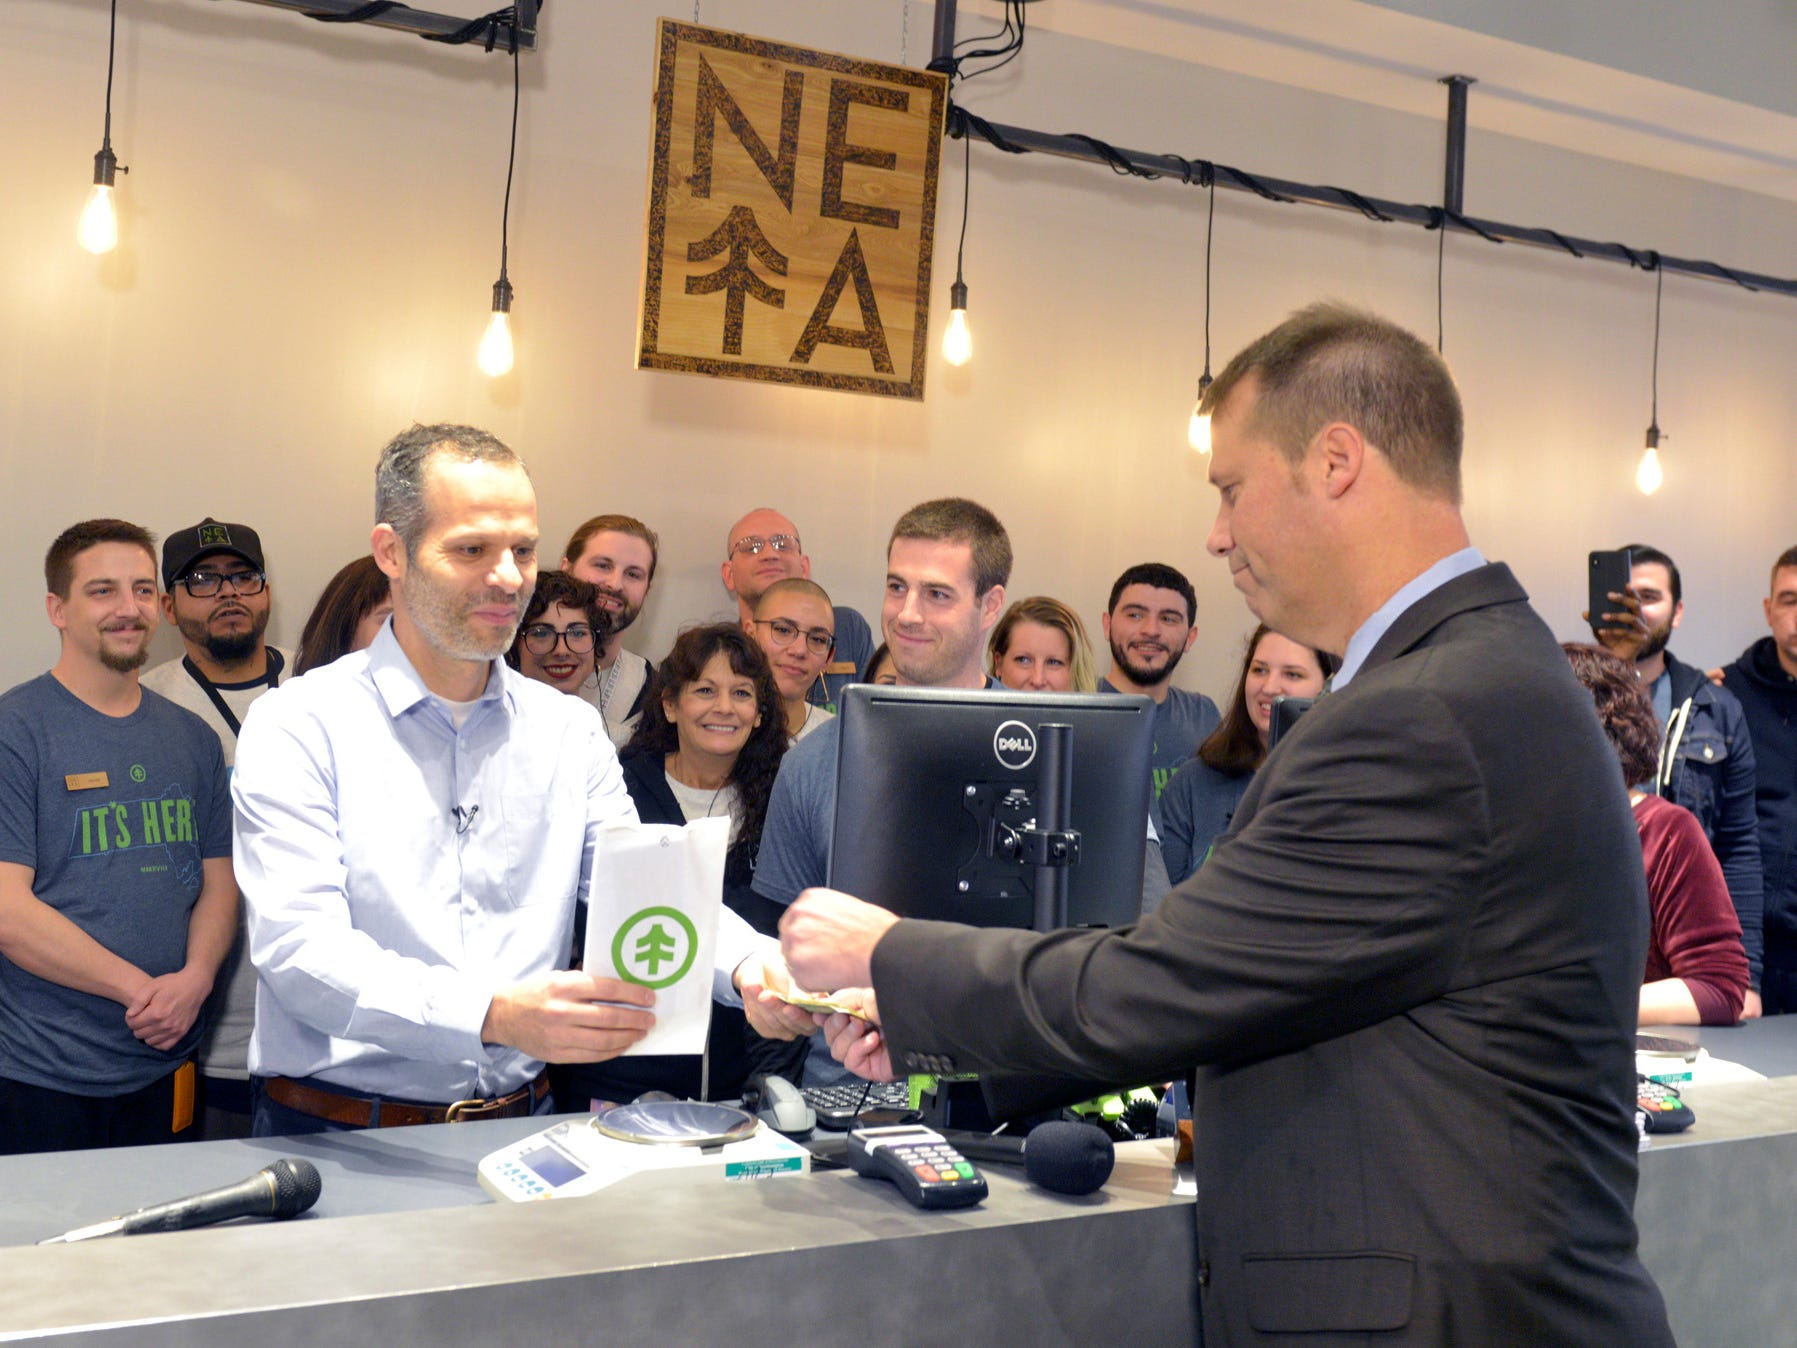 New England Treatment Access co-founder Arnon Vered sells Northampton Mayor David Narkewicz the first legal recreational sale of marijuana at the NETA facility on Tuesday, Nov. 20, 2018, in Northampton, Mass.